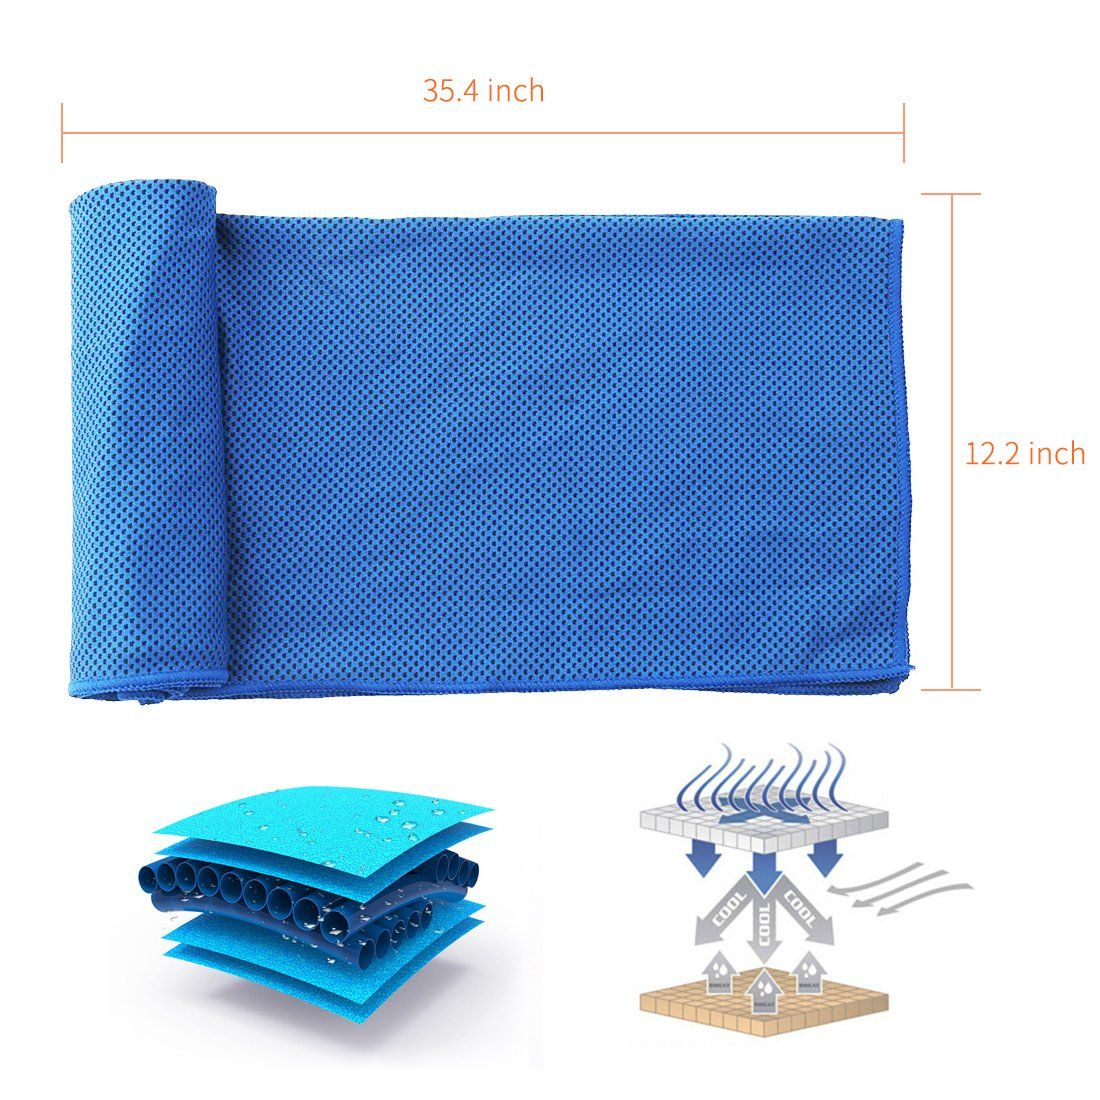 Acevery Cooling Towel 2 Pack Cool Towel For Instant Cooling Relief